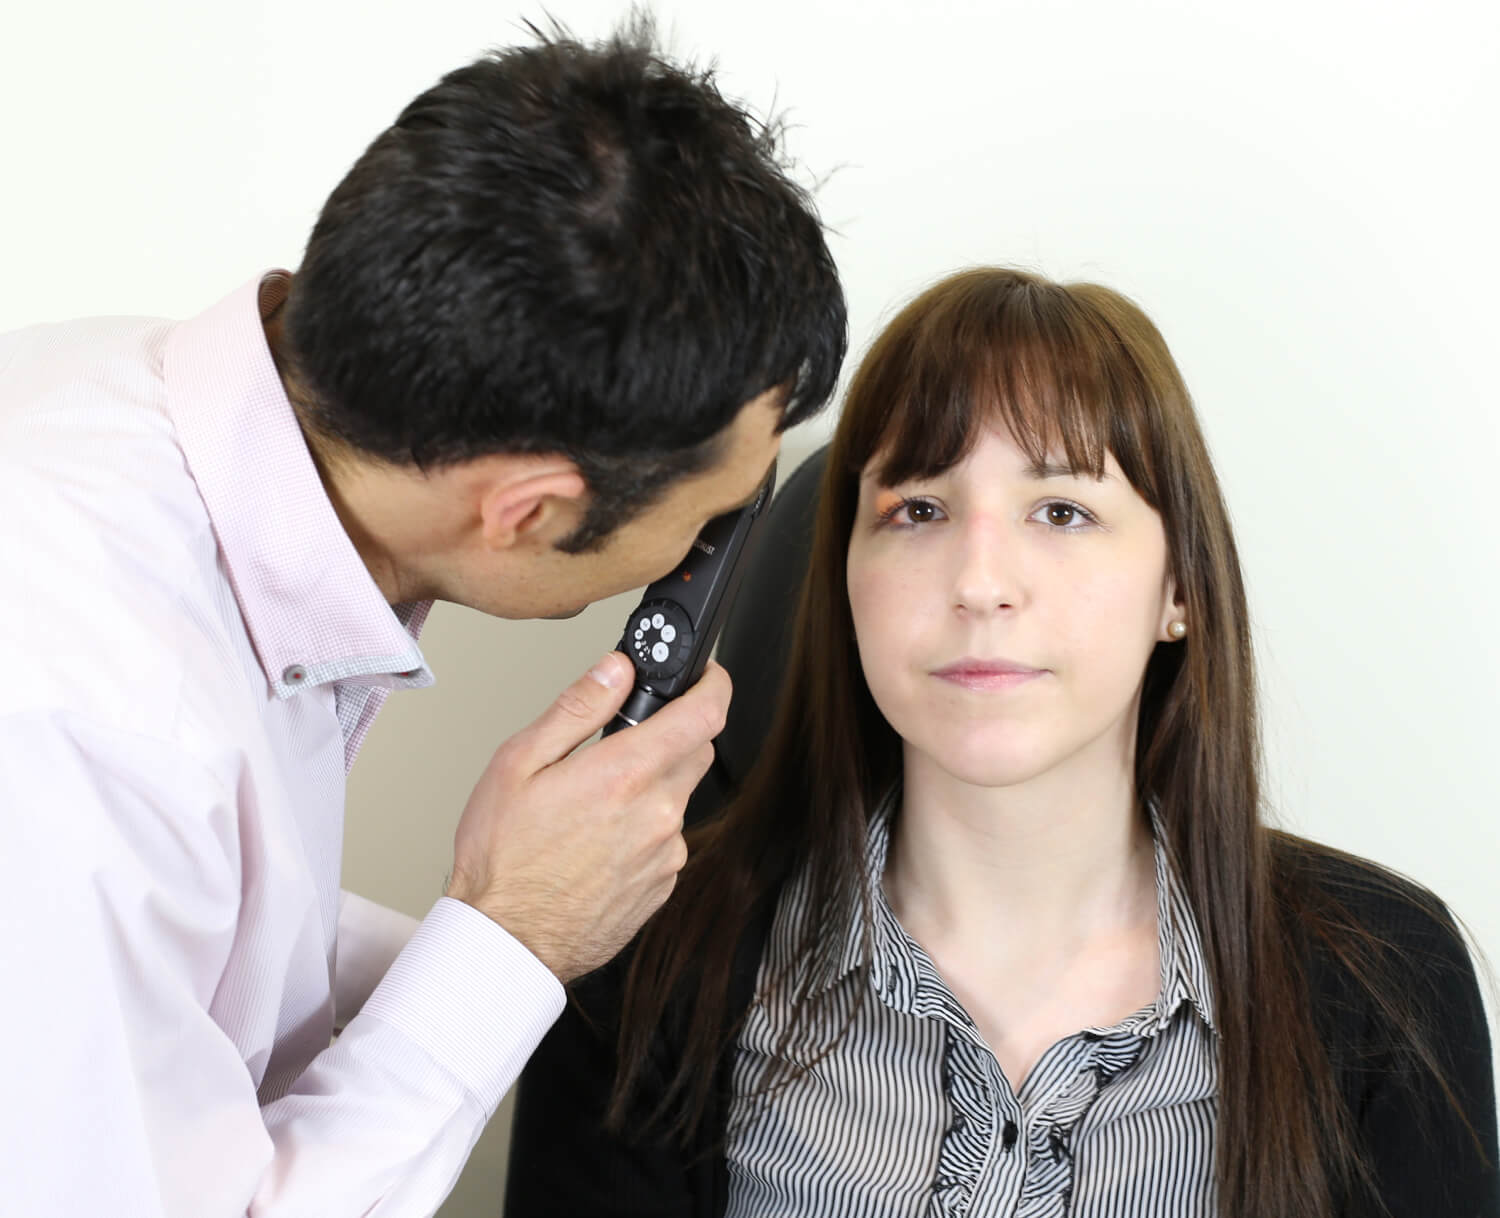 Woman with dark long hair faces forward while dark-haired optometrist looks into her eye using optical equipment during aftercare checkup.